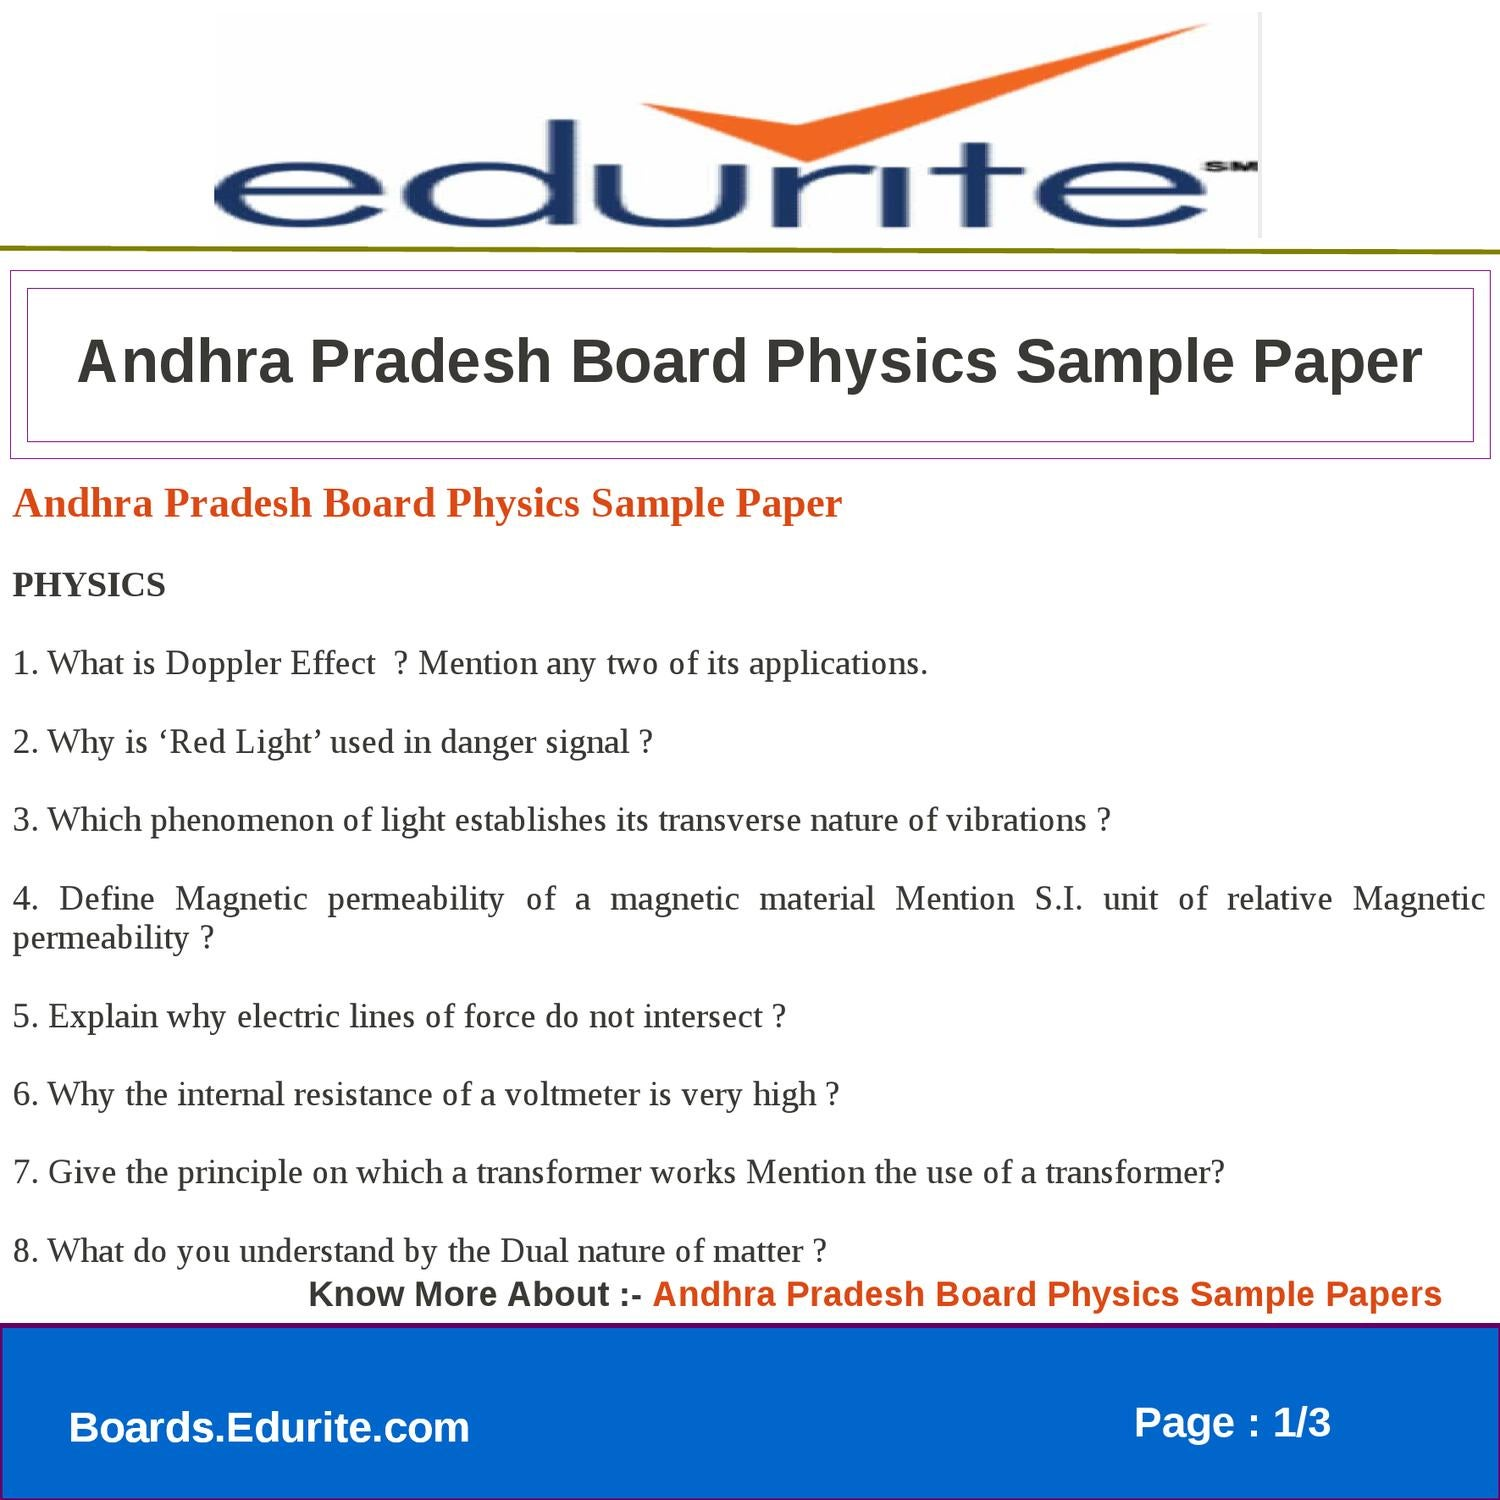 Andhra Pradesh Board Physics Sample Paper by edurite team - issuu